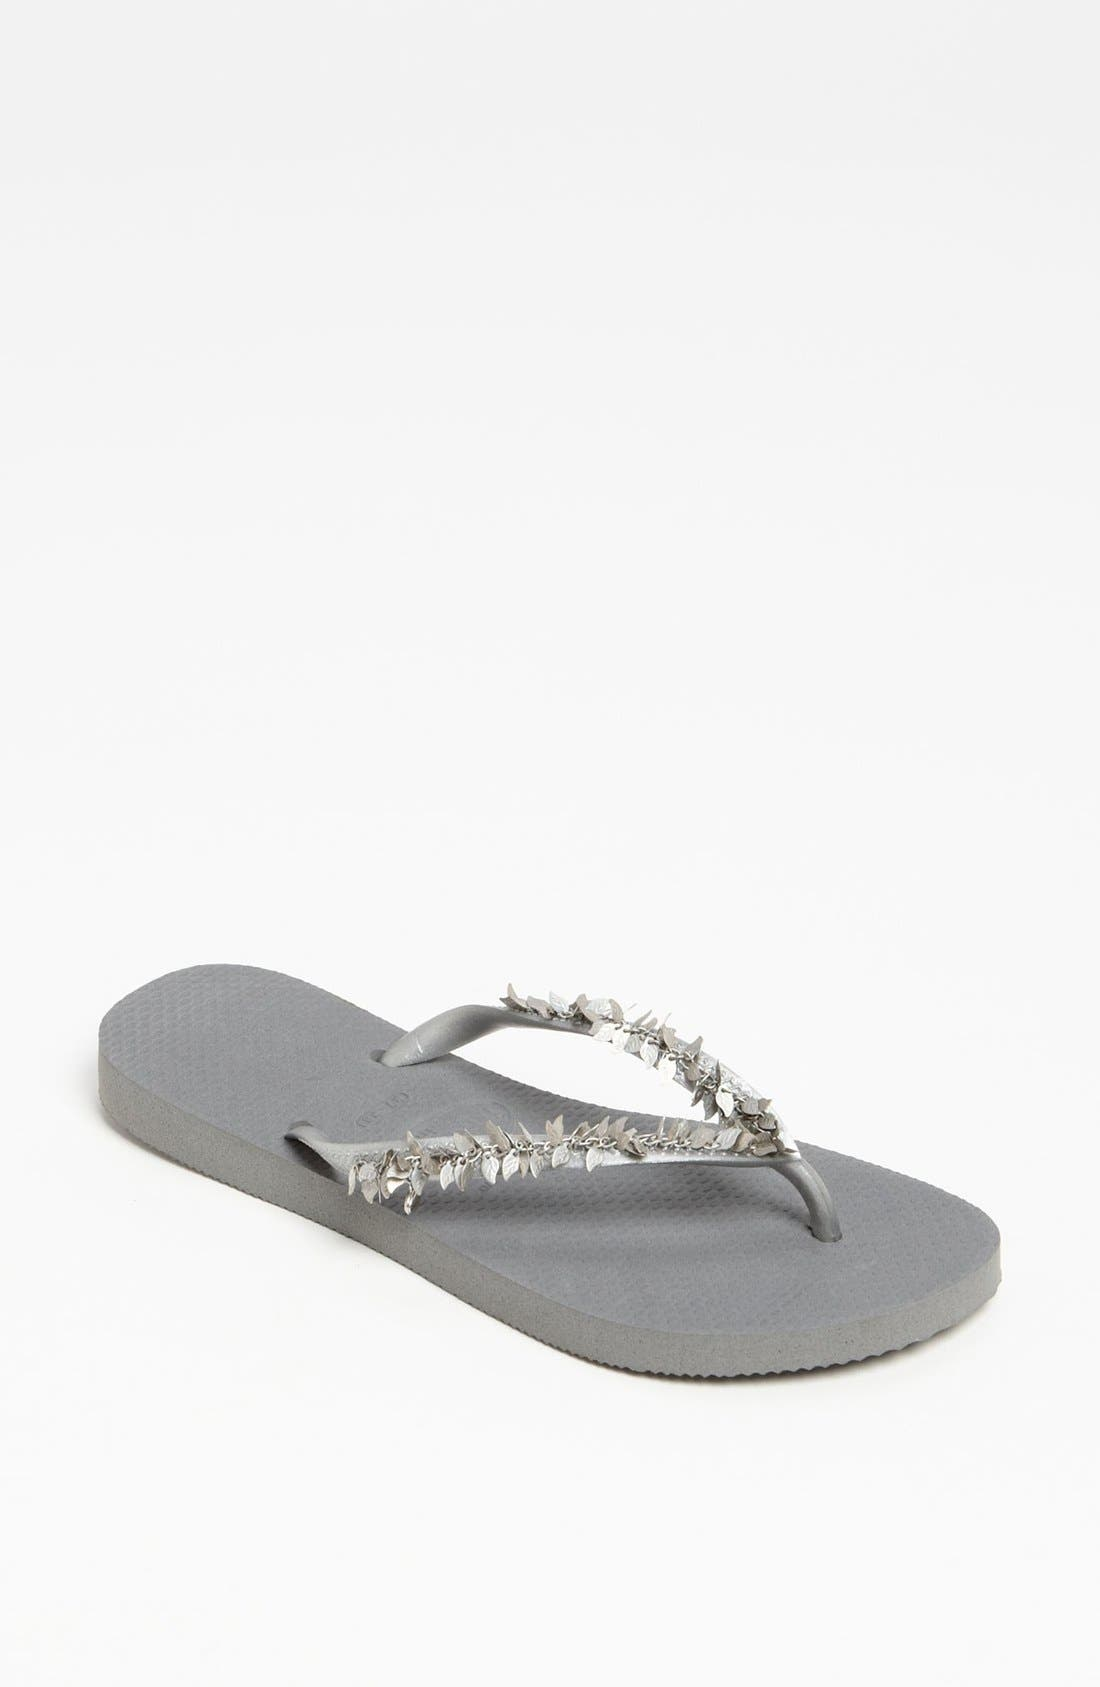 Alternate Image 1 Selected - Havaianas 'Slim Leaves' Sandal (Women)